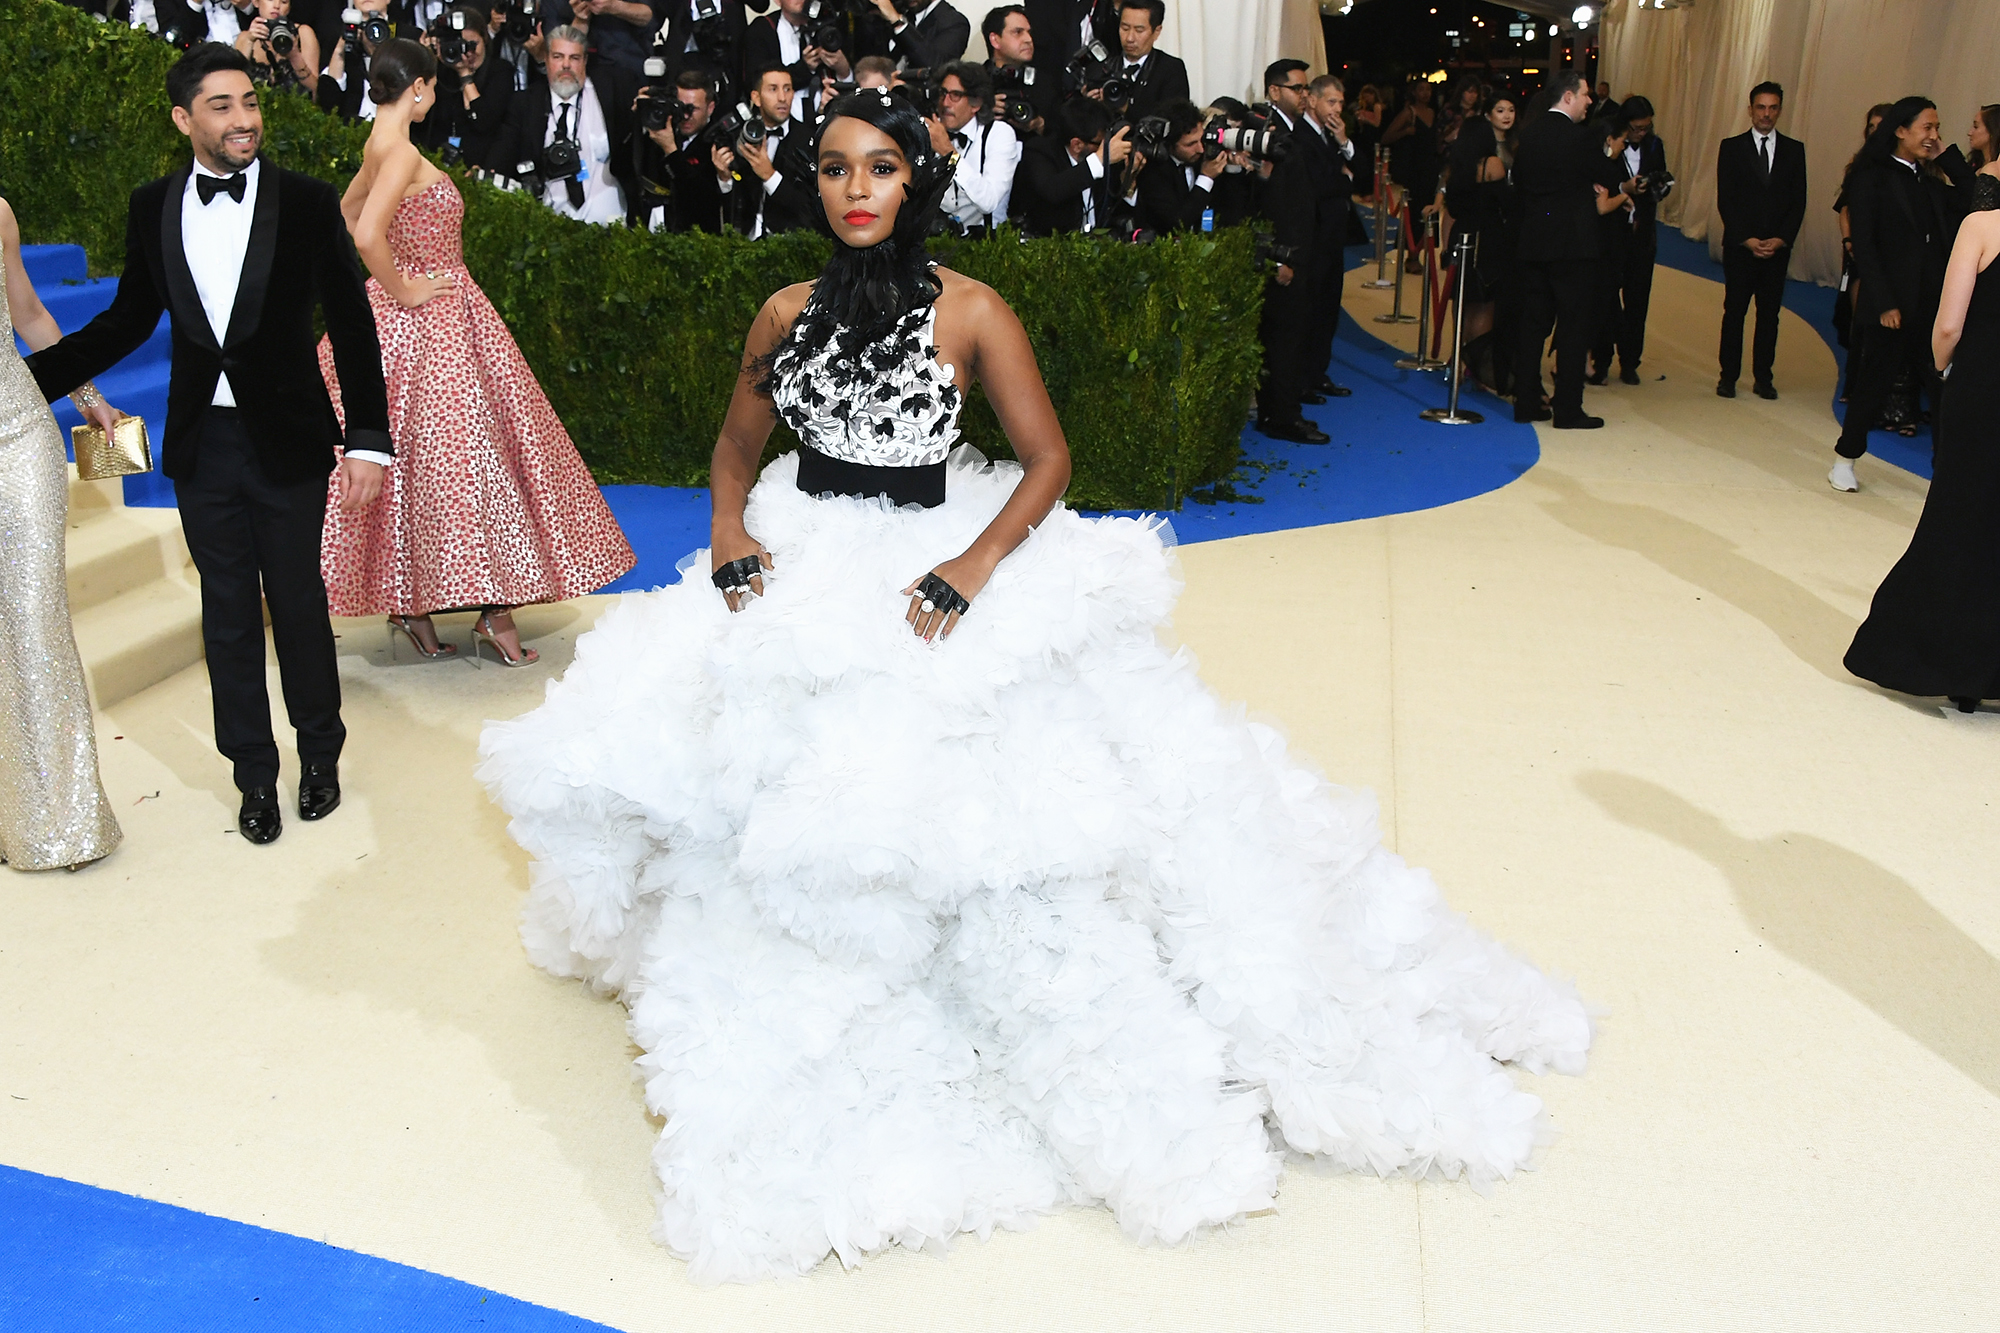 Janelle Monáe attends The Metropolitan Museum of Art's Costume Institute benefit gala celebrating the opening of the Rei Kawakubo/Comme des Garçons: Art of the In-Between exhibition in New York City, on May 1, 2017.